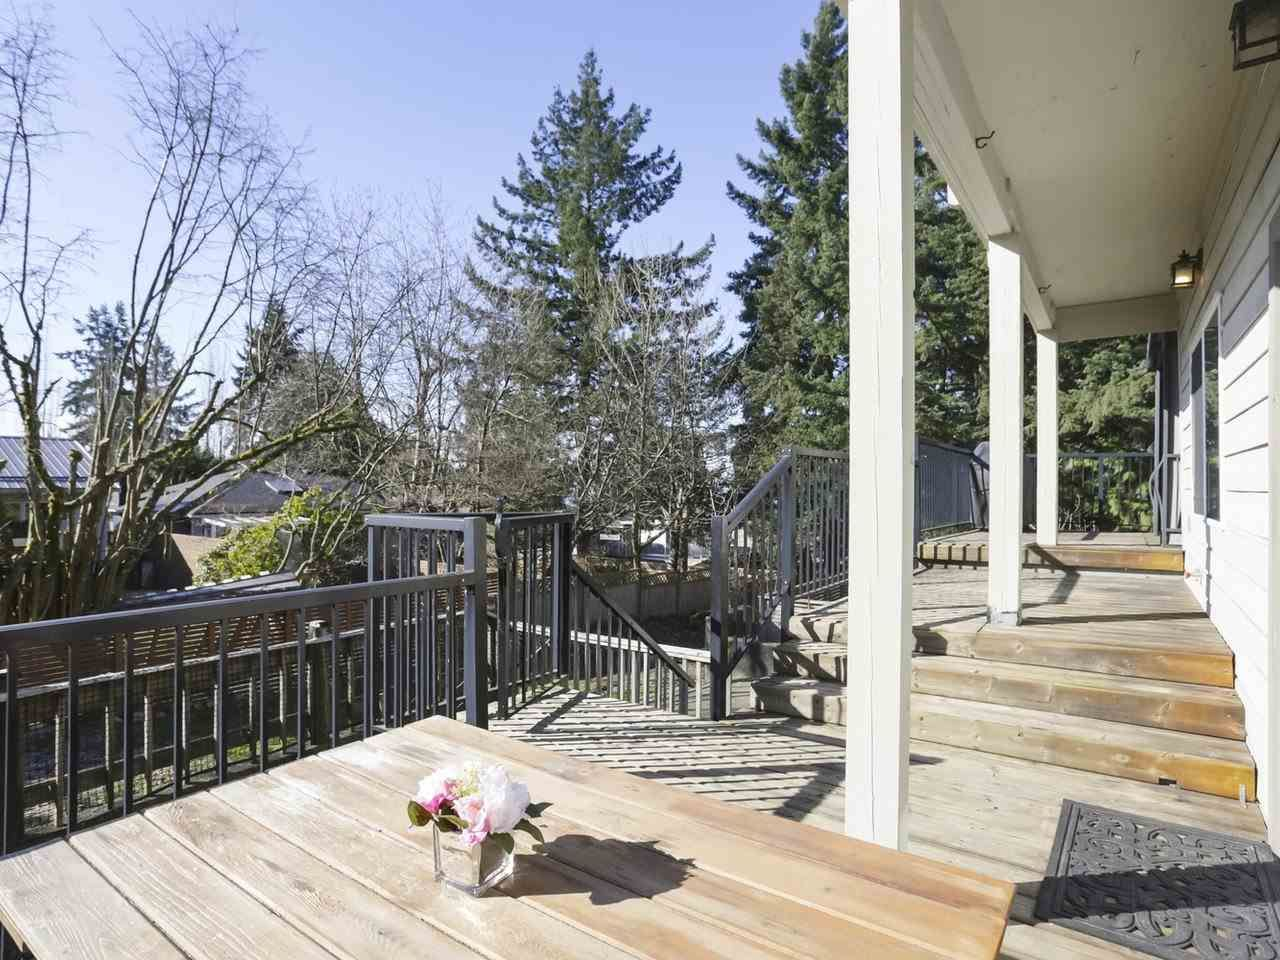 Photo 16: Photos: 325 W KINGS Road in North Vancouver: Upper Lonsdale House for sale : MLS®# R2443642